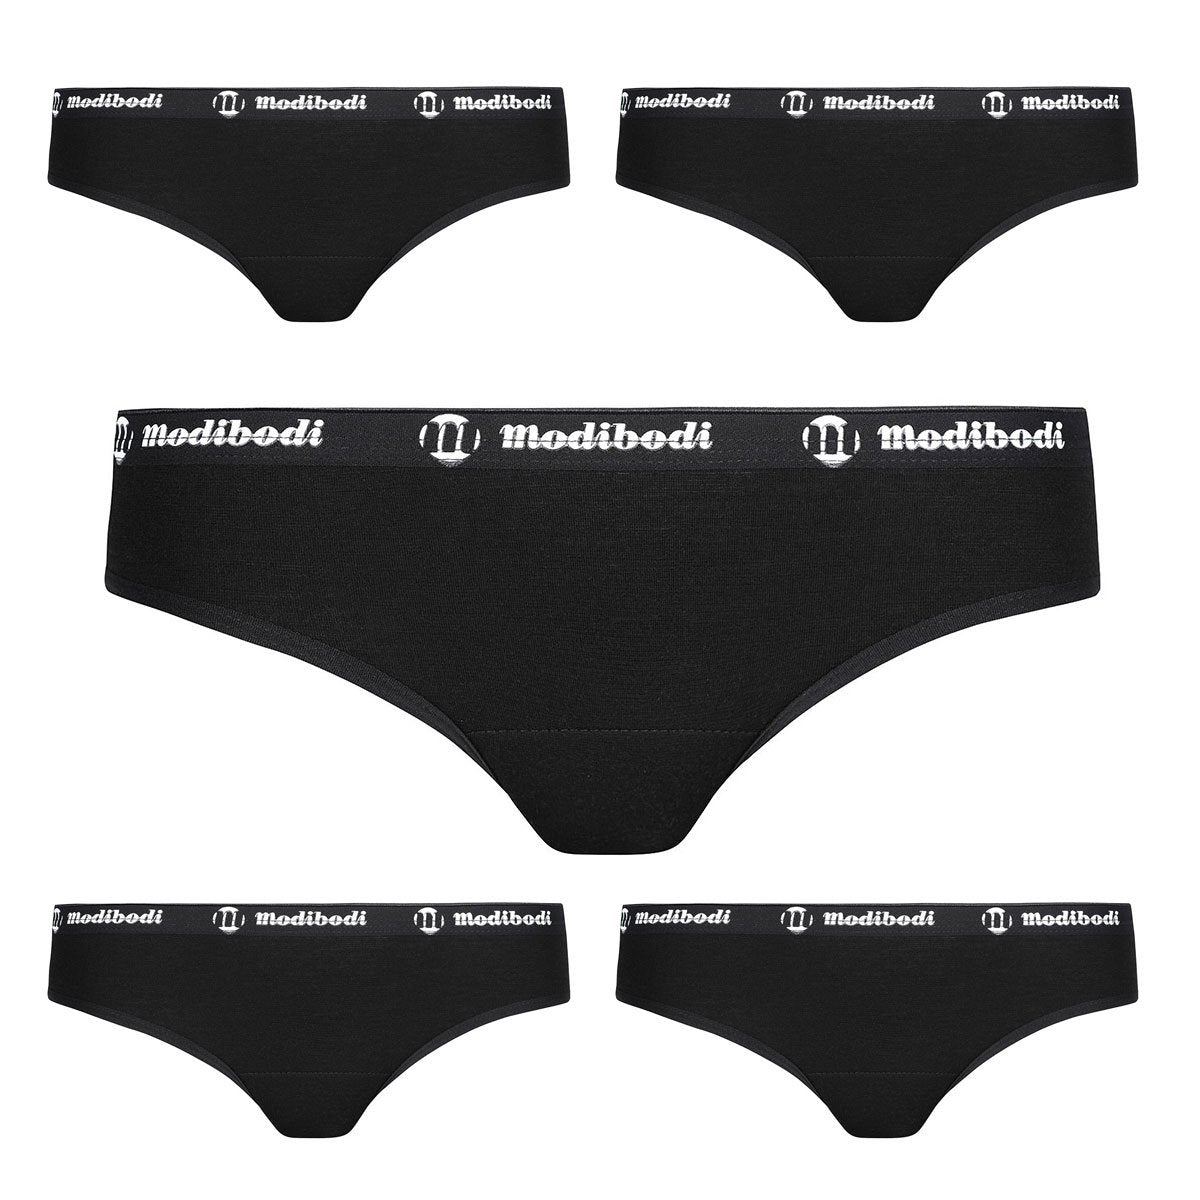 Modibodi Period and Incontinence Underwear - Active Brief 5 Pack